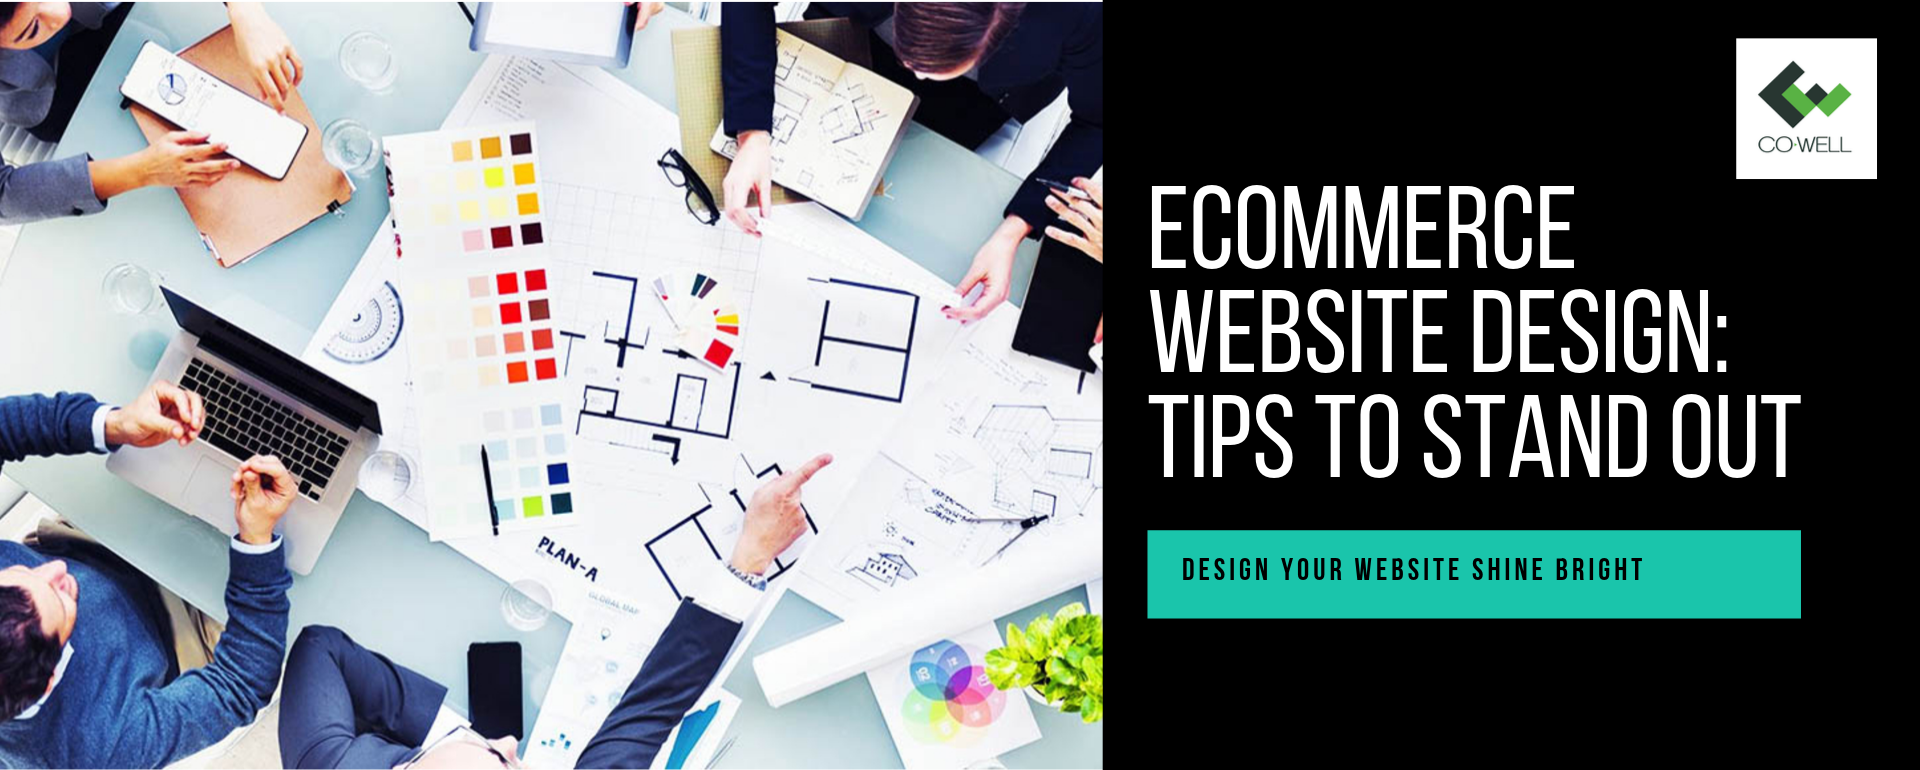 ECOMMERCE WEBSITE DESIGN: TIPS TO STAND OUT